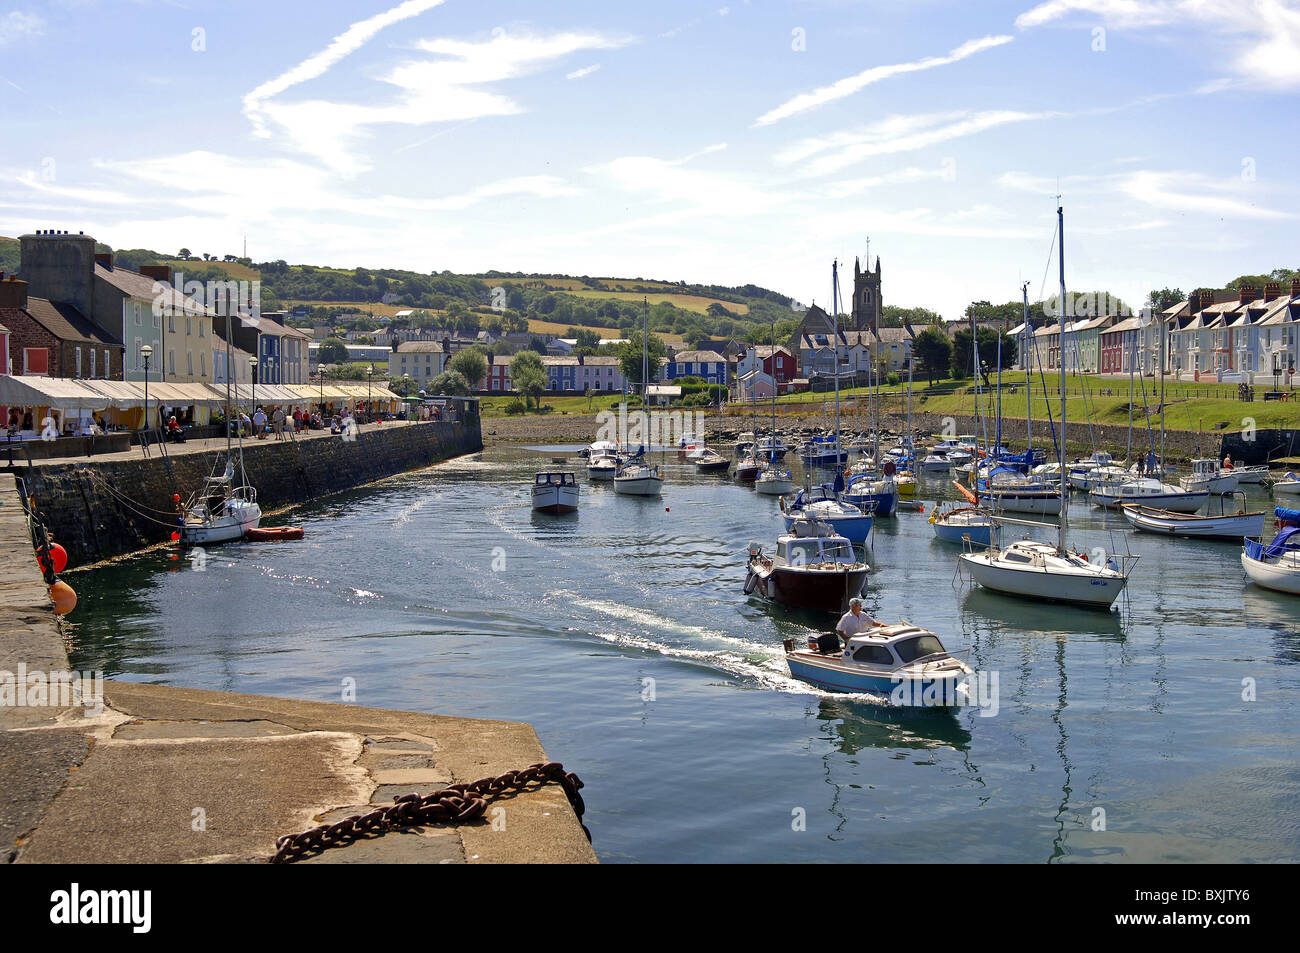 a boat leaves the harbor in aberaeron during the seafood festival - Stock Image